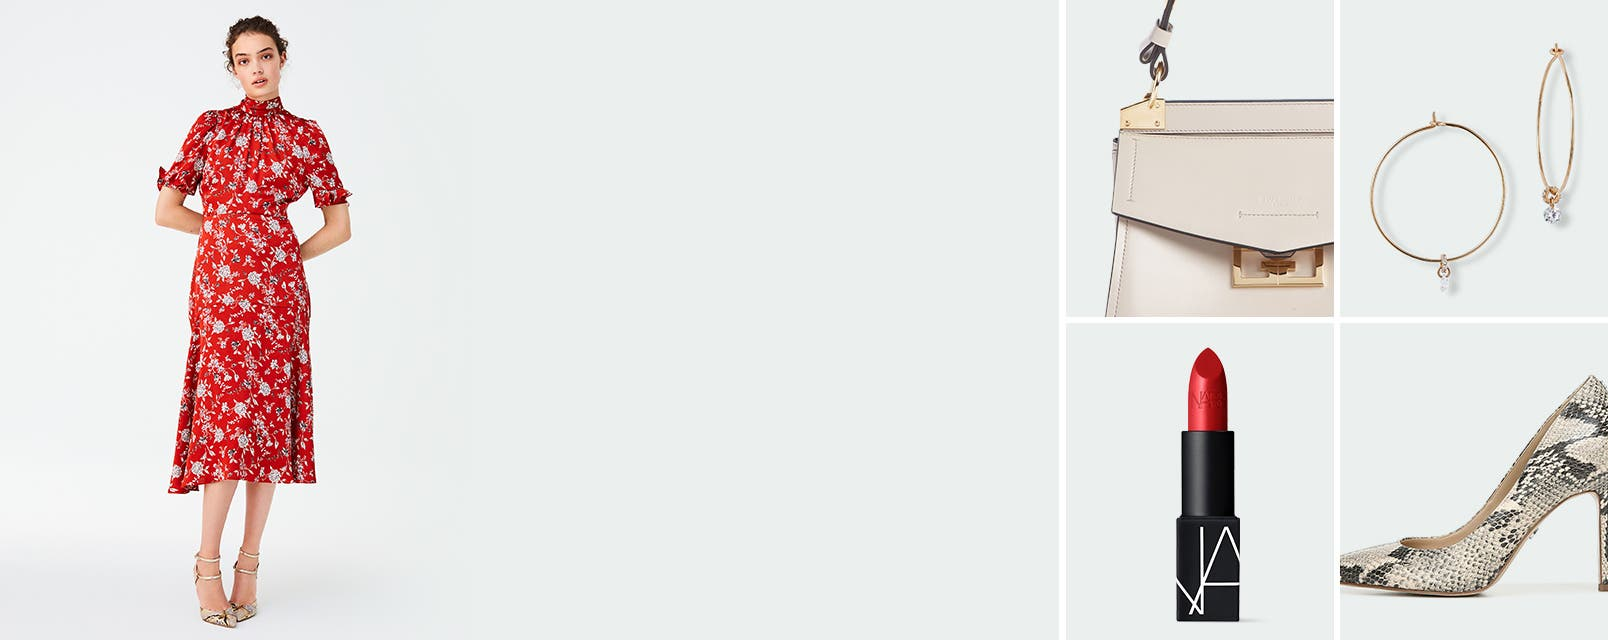 5a6e77f563 Nordstrom Online & In Store: Shoes, Jewelry, Clothing, Makeup, Dresses